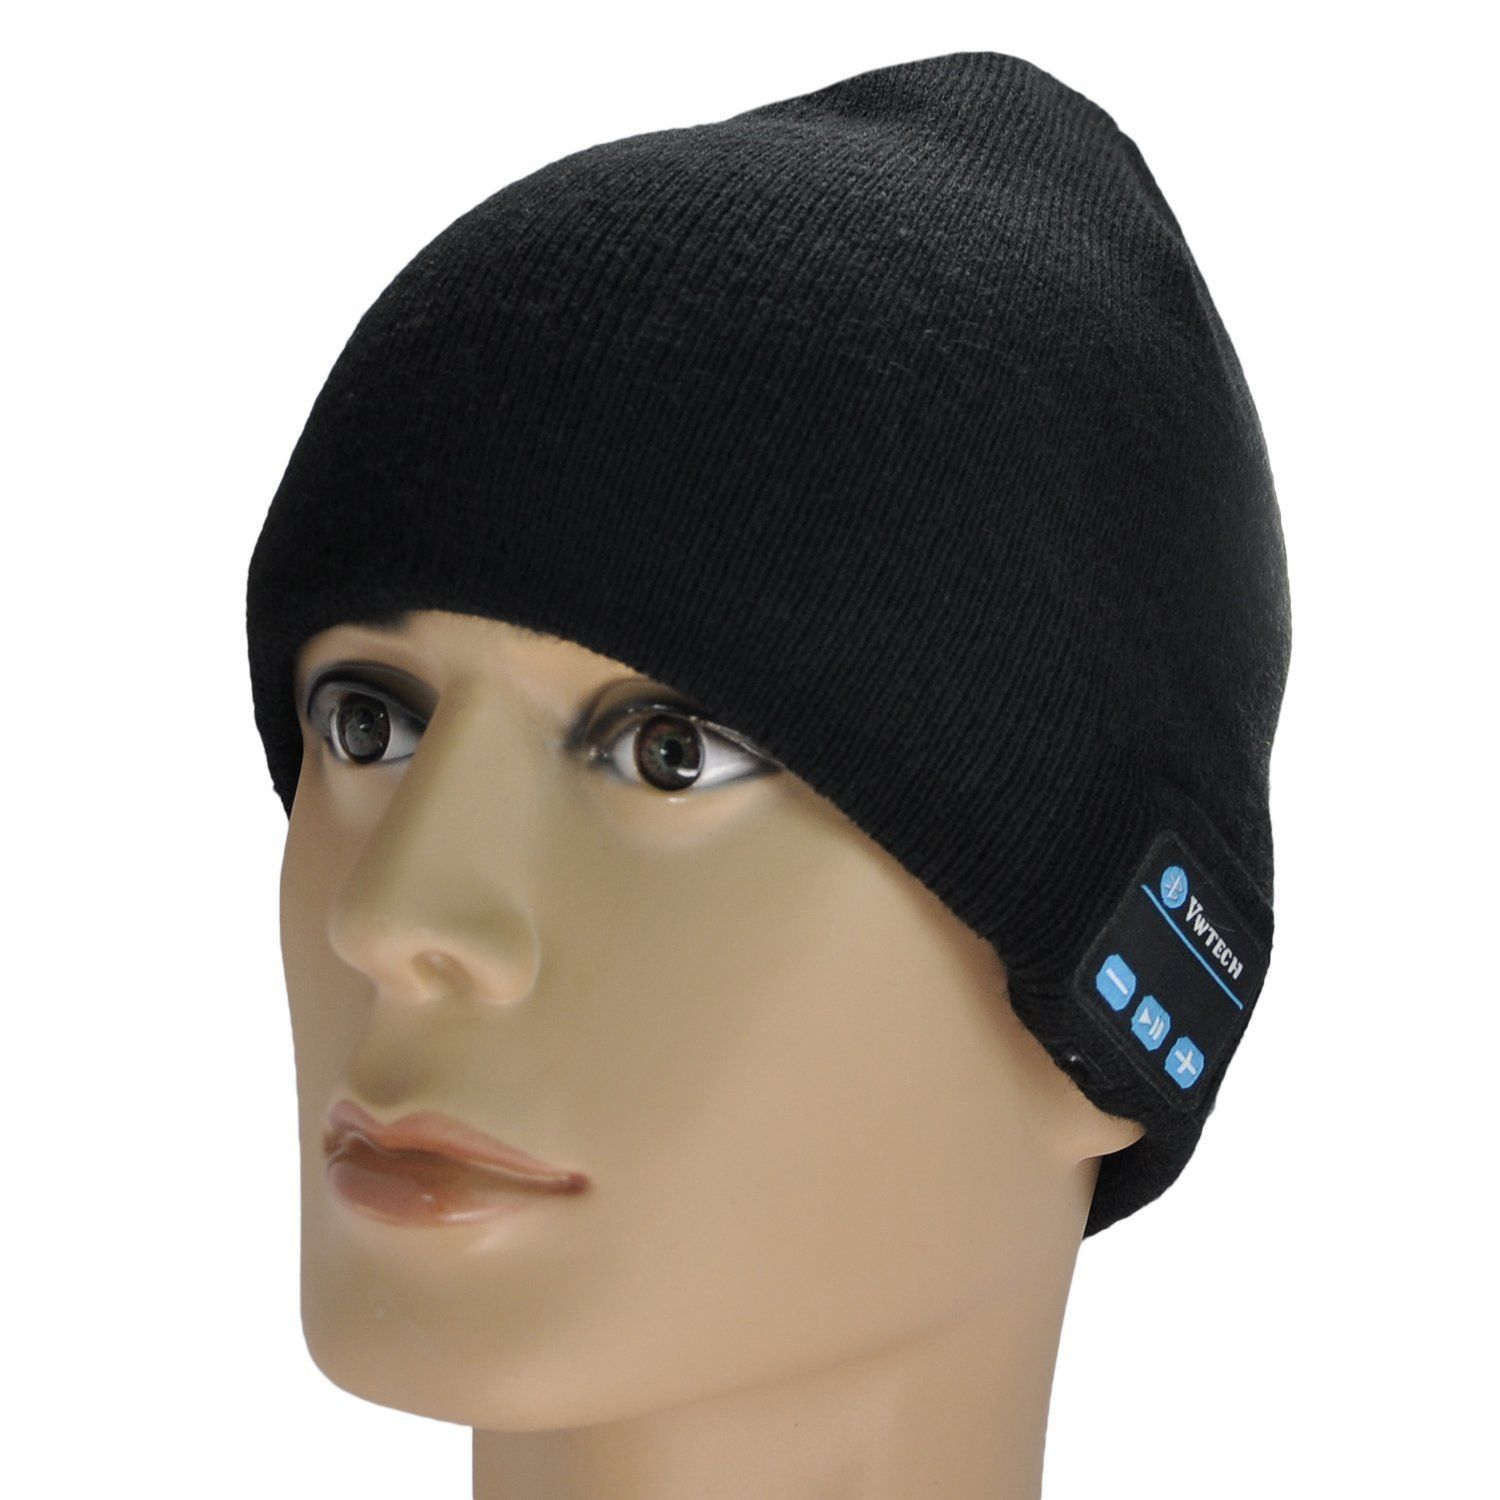 Warm Beanie Hat Wireless Bluetooth Music Smart Cap Headphone Headset Speaker Bluetooth HatÎäåæäà è àêñåññóàðû<br><br><br>Aliexpress